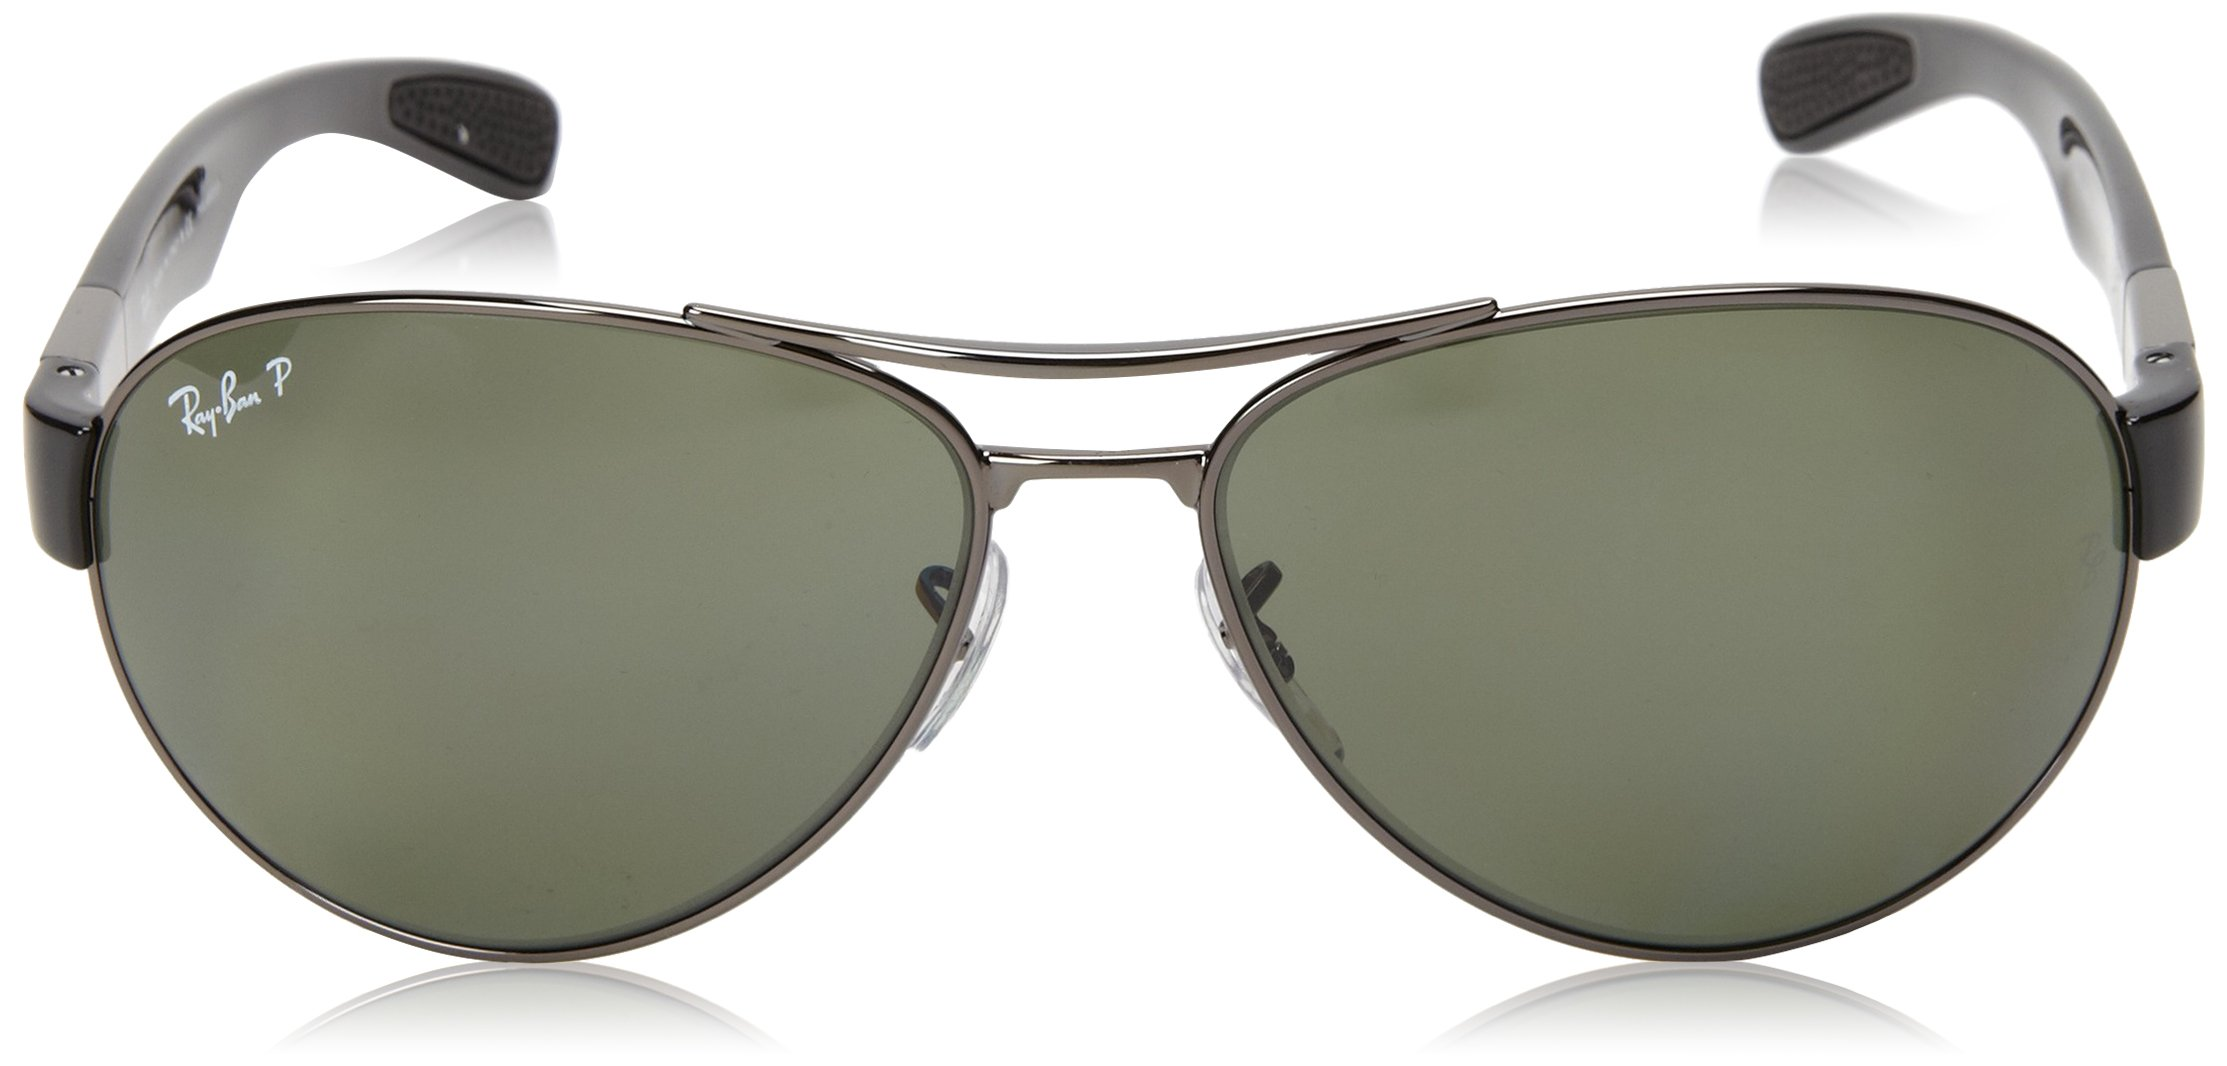 3f07c51b12 Buyr.com - Ray-Ban RB3509 - GUNMETAL Frame POLAR GREEN Lenses 63mm Polarized